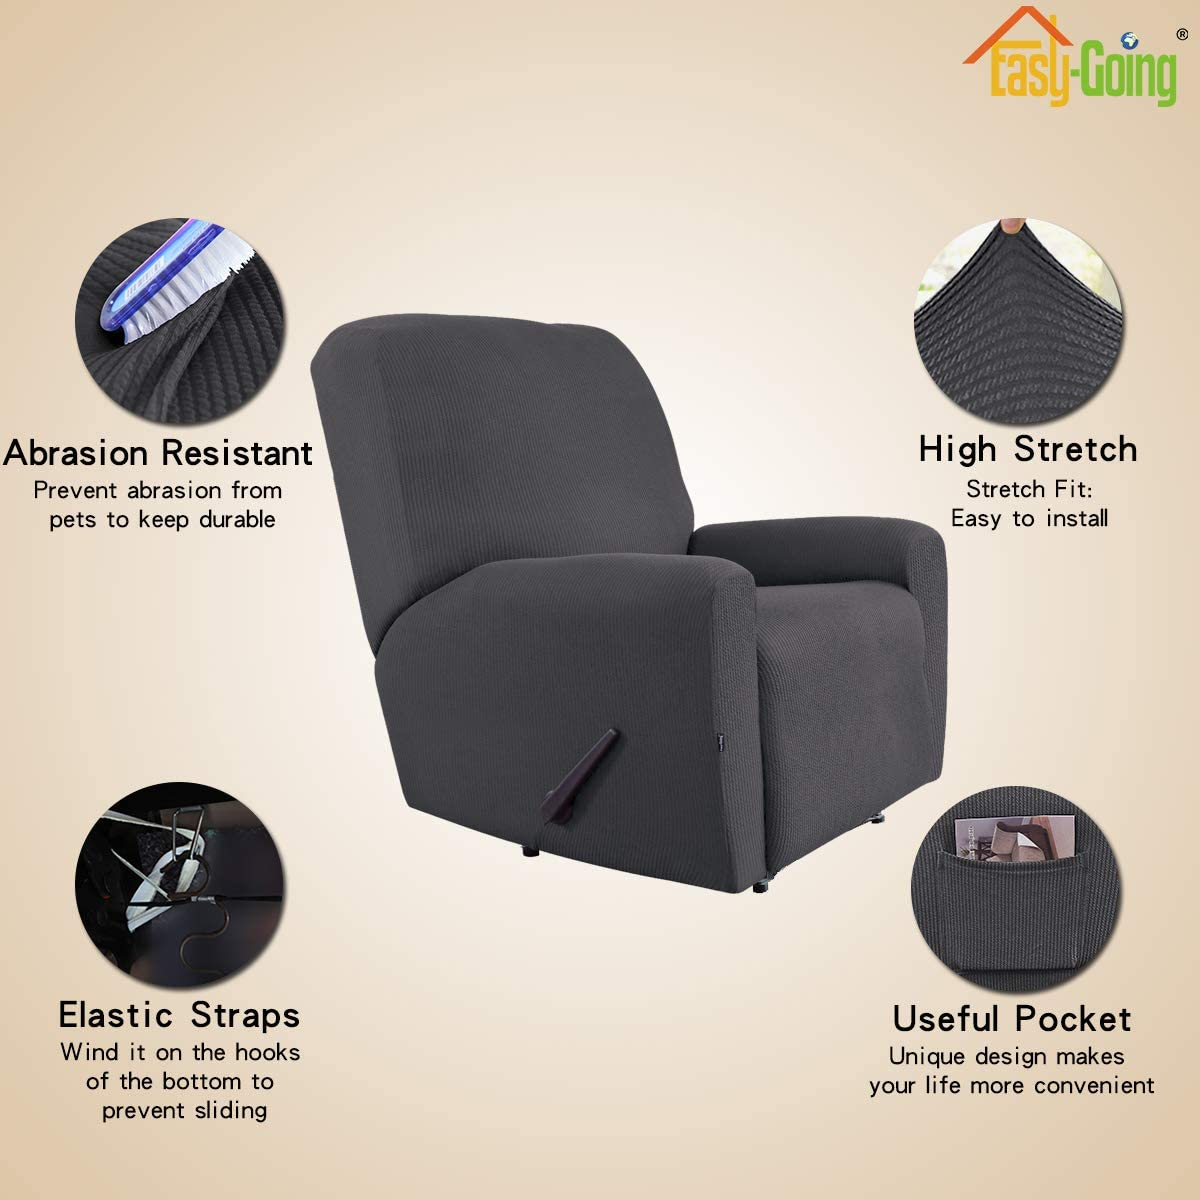 Easy-Going Thickened Recliner Stretch Slipcover Furniture Protector with Elastic Bottom Recliner,Black Pets,Kids,Children,Dog,Cat Sturdy Fabric Slipcover Sofa Cover 4 Pieces Couch Shield